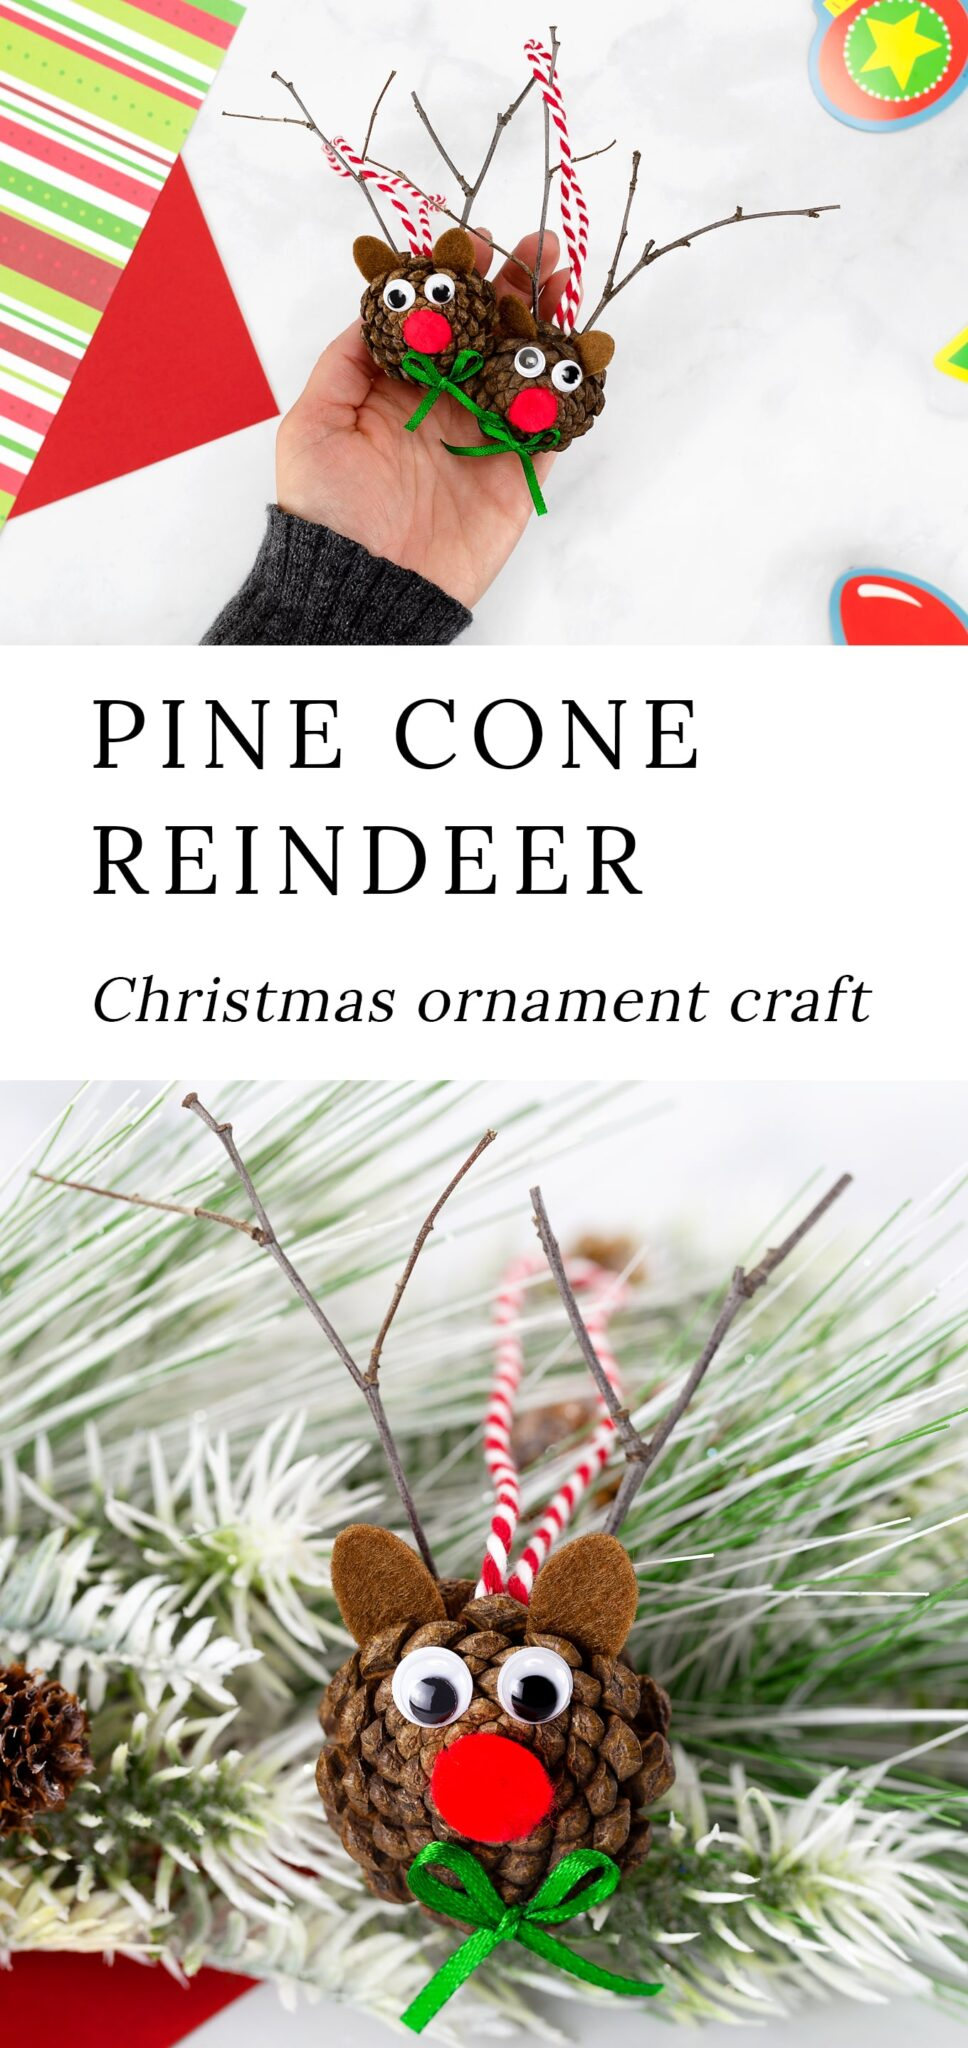 Pine Cone Reindeer ornaments are an easy and fun holiday nature craft for kids of all ages. Perfect for home, the classroom, and community programs! #pineconereindeer #christmas #naturecrafts #kidscrafts via @firefliesandmudpies